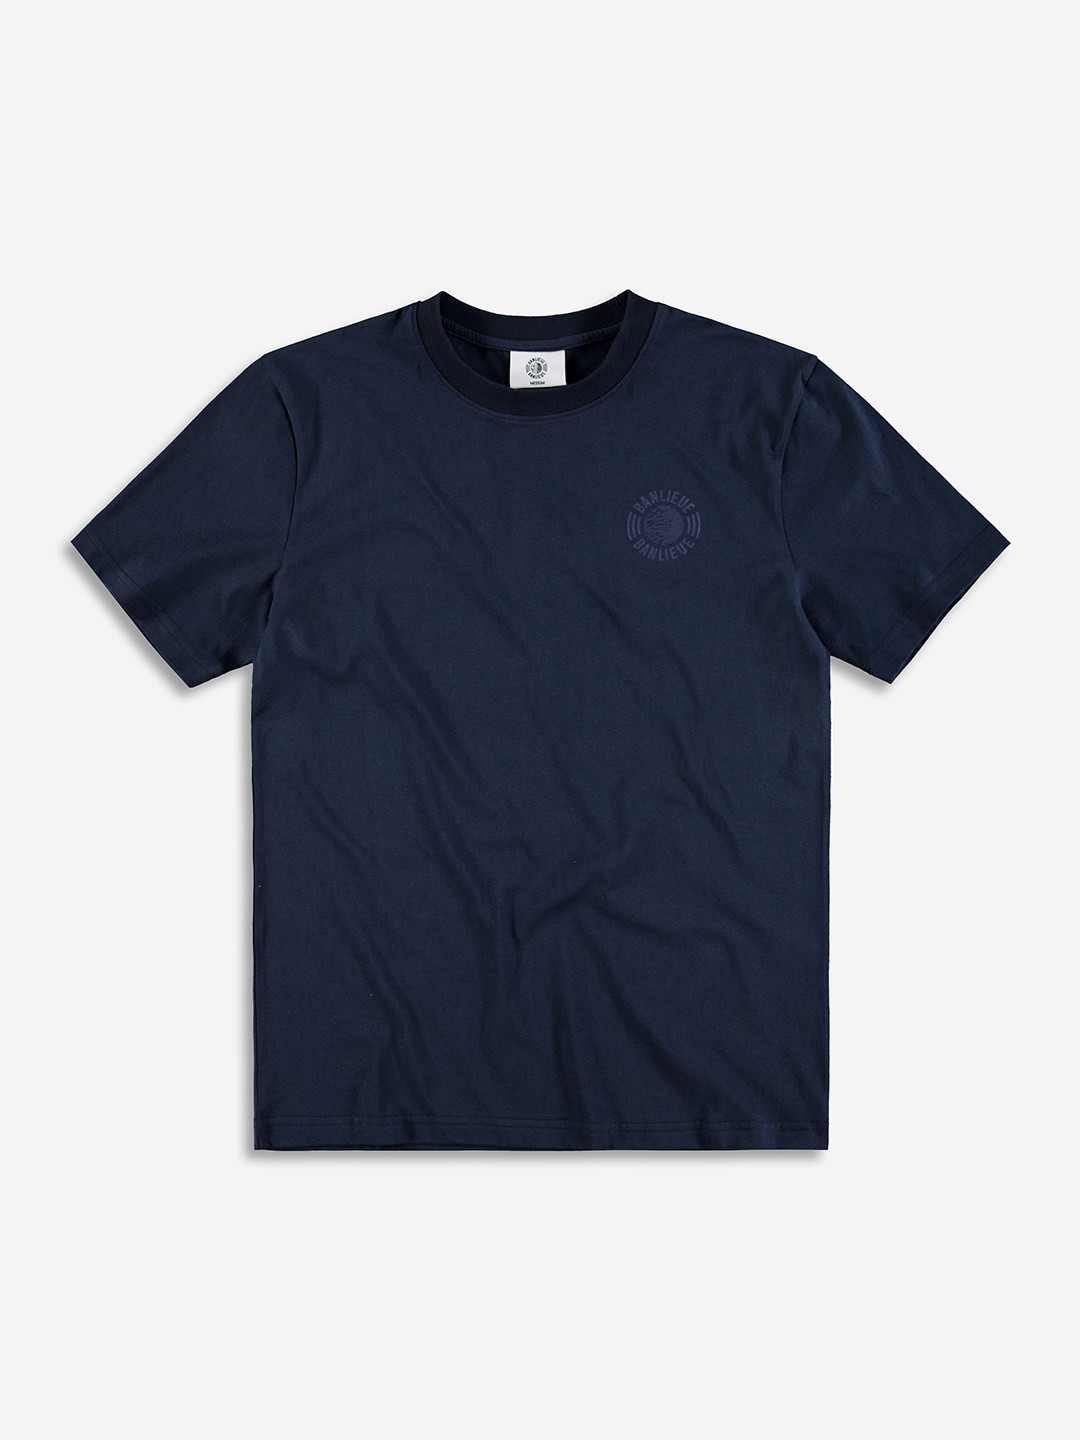 TONAL T-SHIRT NAVY